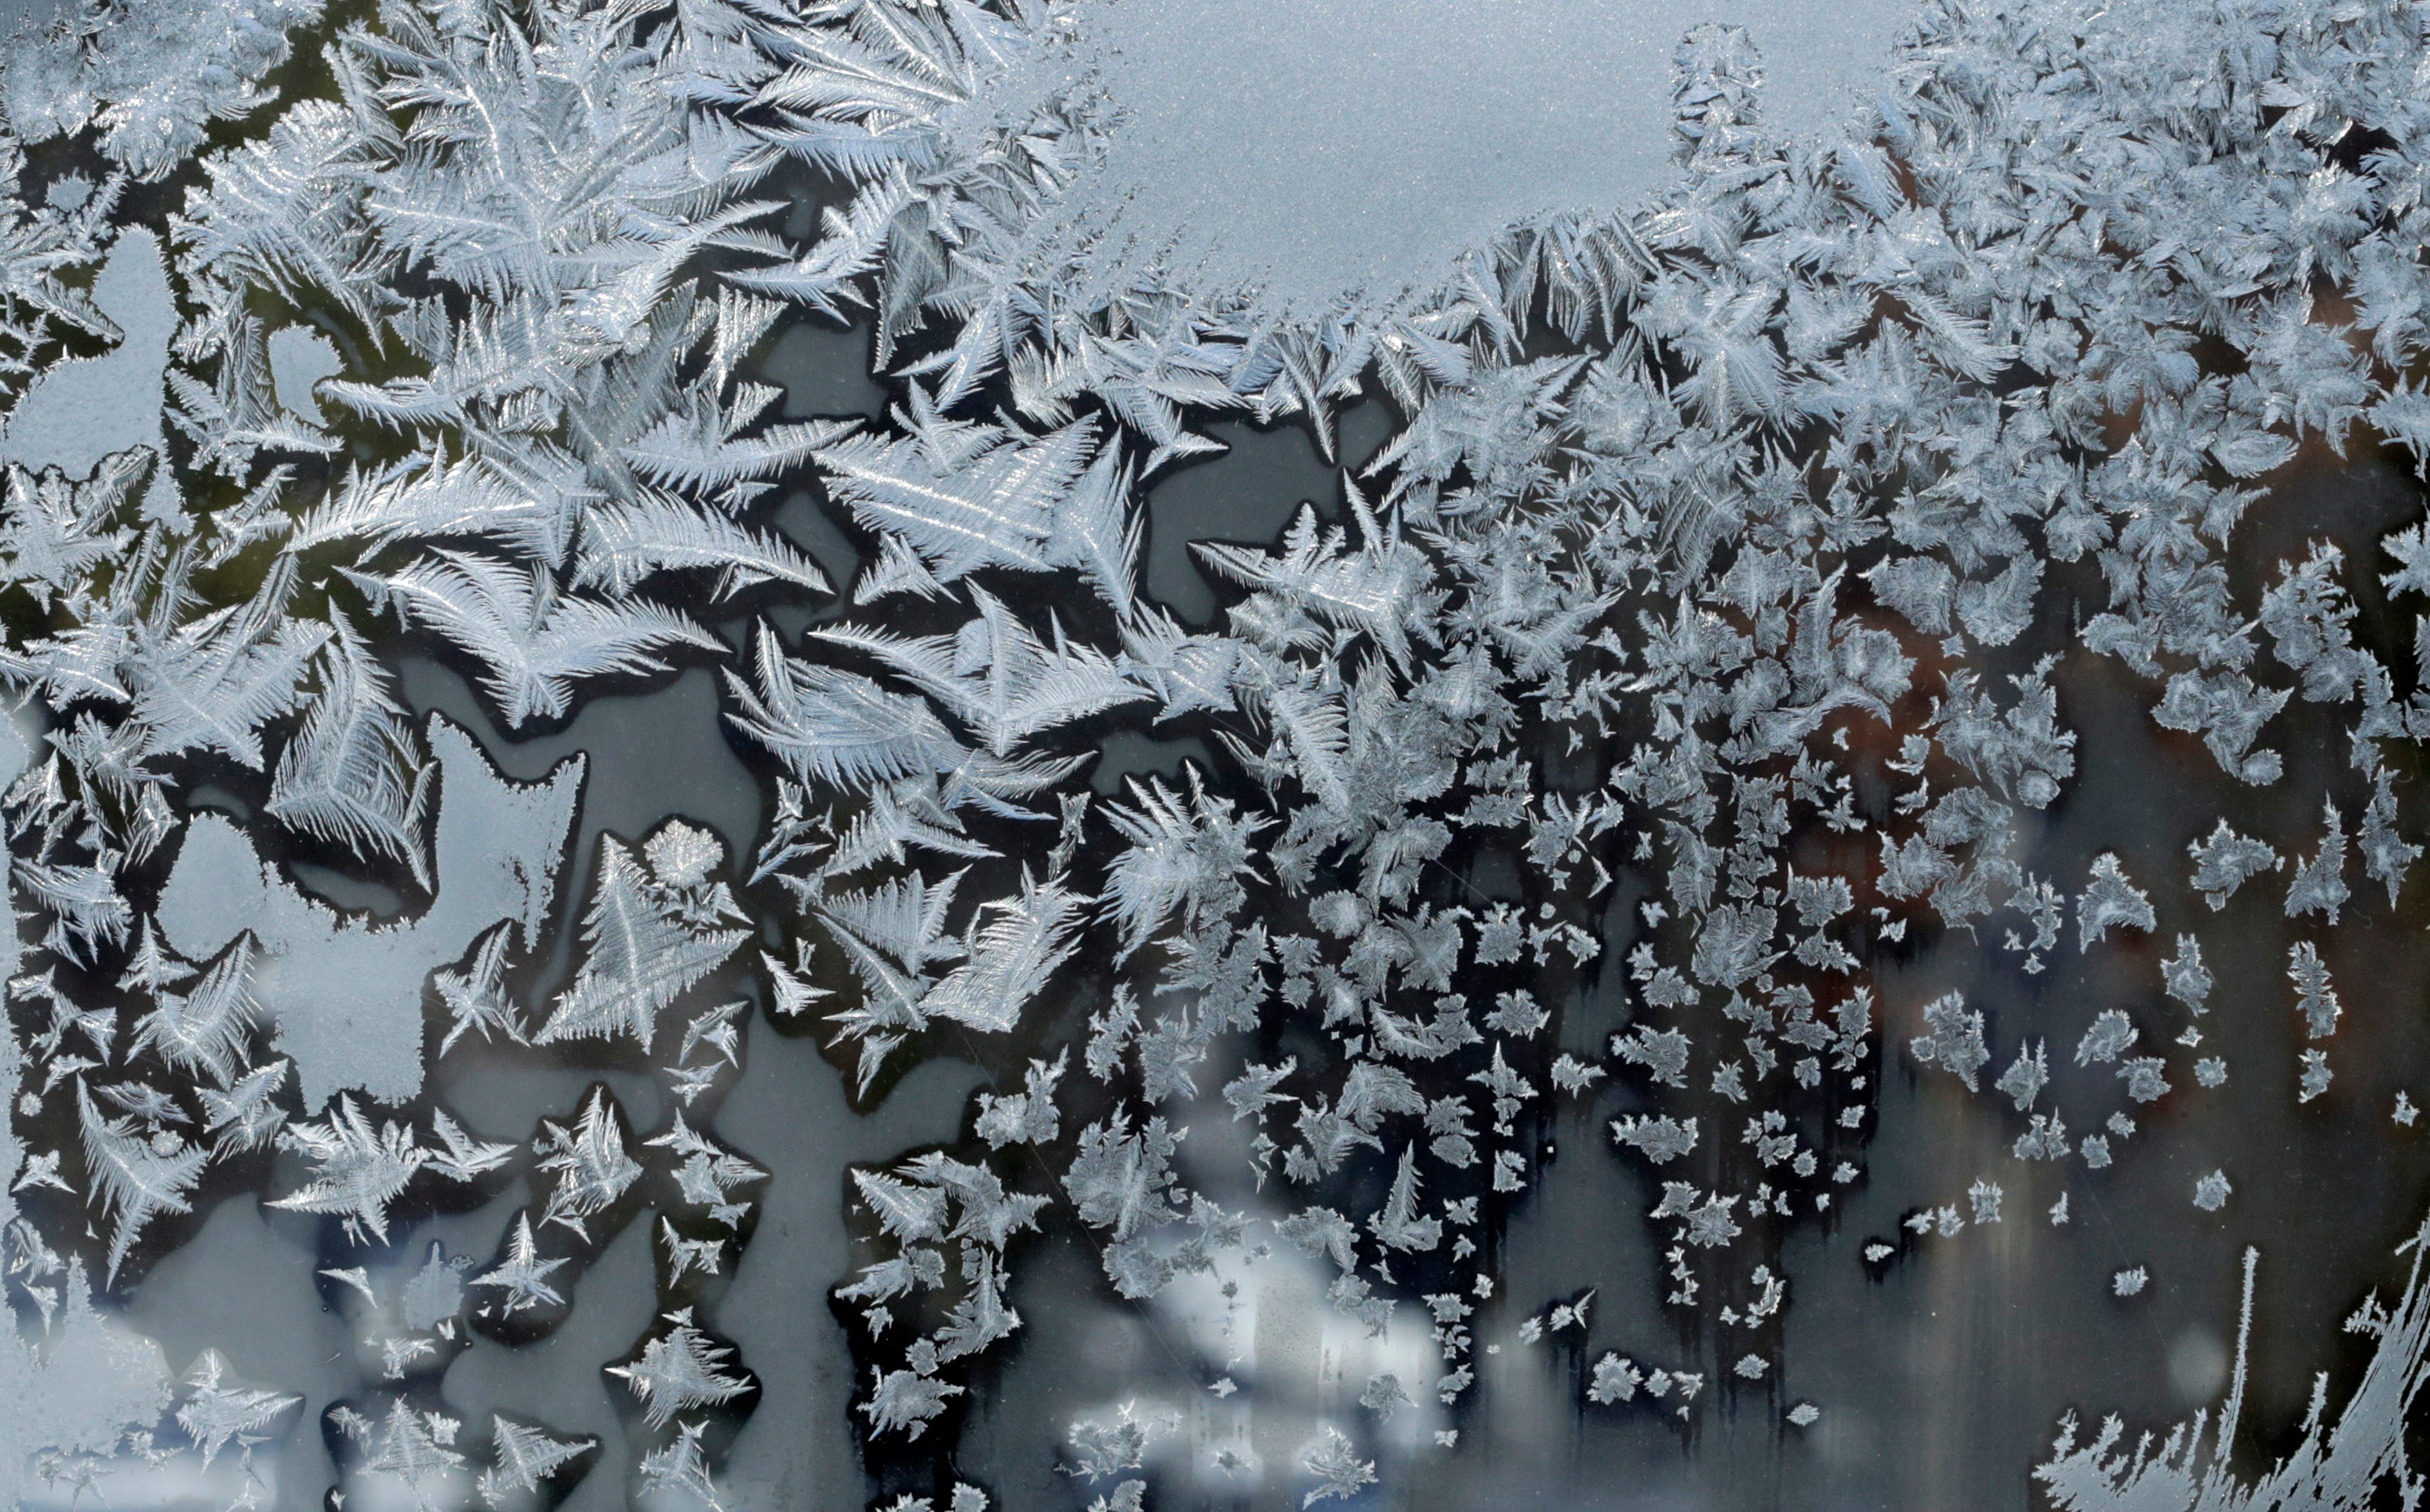 Ice Crystals form on a window Thursday, Jan. 31, 2019, in Pepper Pike, Ohio. The painfully cold weather system holding much of the Midwest in a historic deep freeze sent temperatures plunging to record low temperatures in several cities Thursday, and while a dramatic swing of as much as 80 degrees is expected by early next week, the weather system continued to wreak havoc to air travel and other infrastructure as it marched eastward.